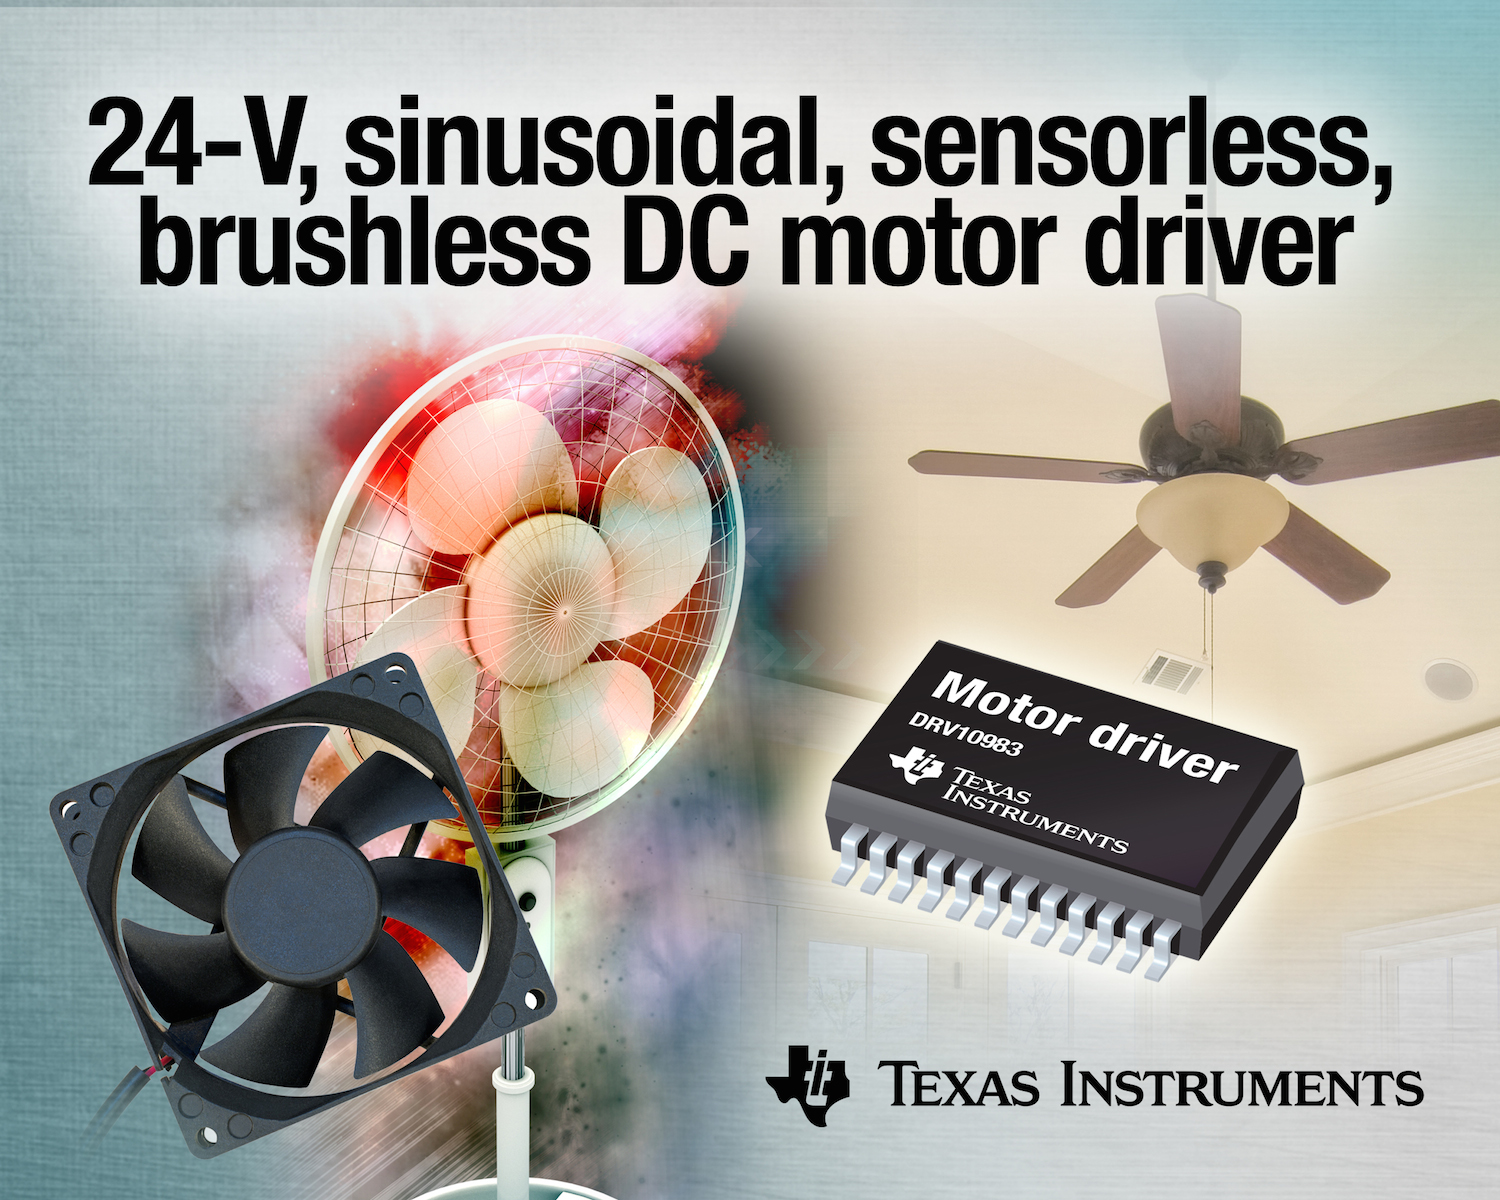 Motor Driver Quietens Noise In Fan And Small Pump Applications Brushless Controller Schematic 2015 Texas Instruments Ti Has Introduced The Industrys First 24 V Sinusoidal Sensorless Dc Bldc